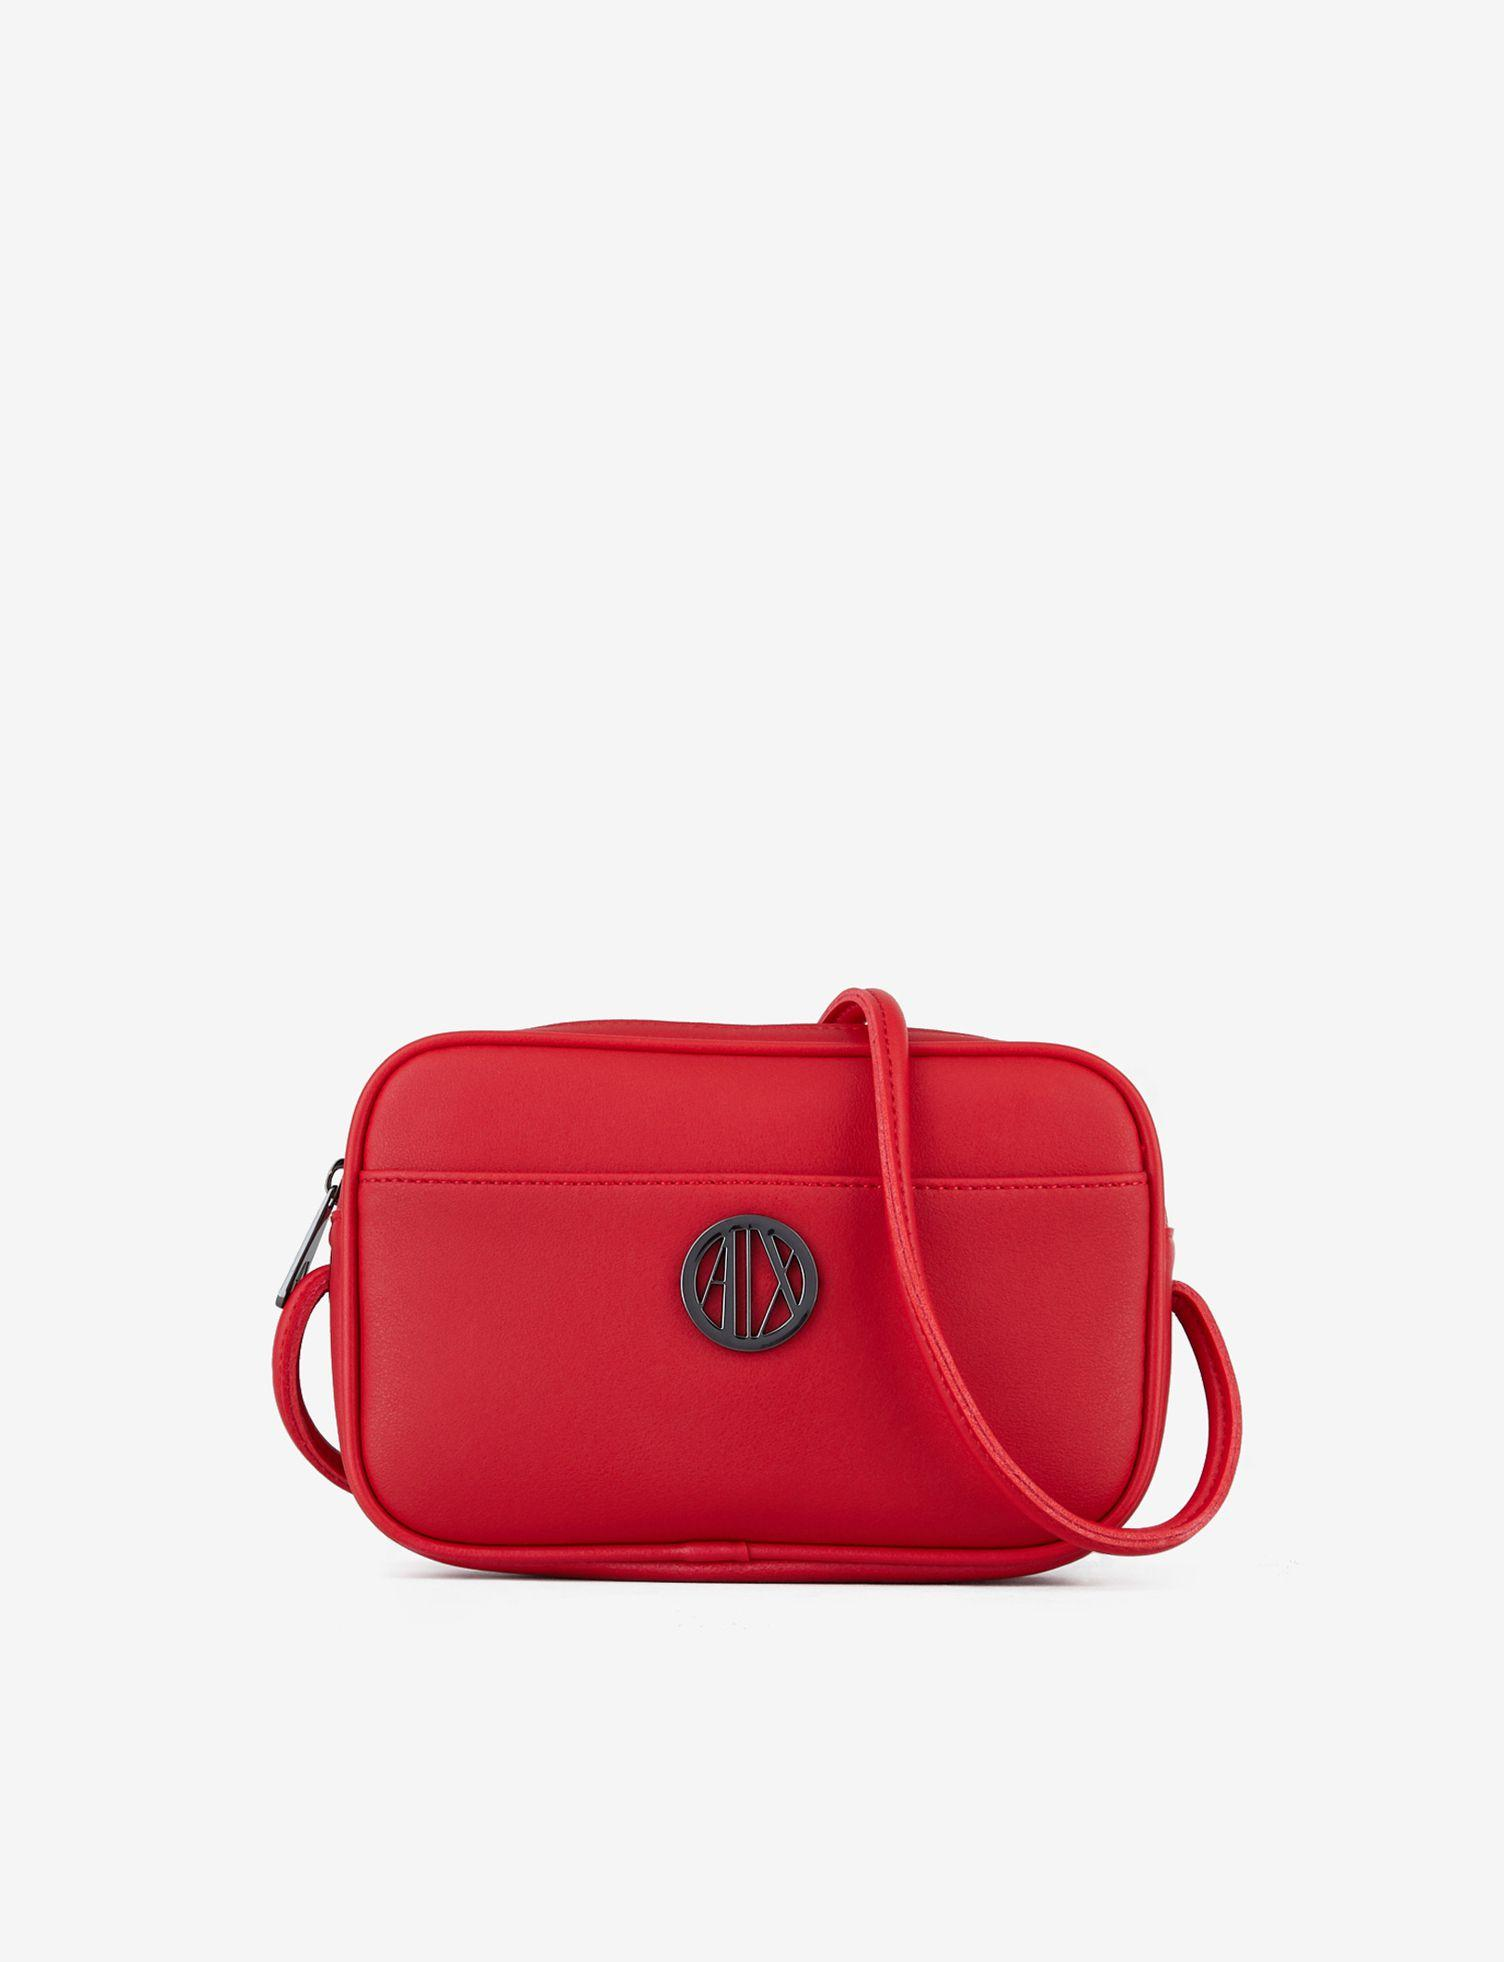 0621ef1c506a Lyst - Armani Exchange Crossbody With Appliqué Logo in Red